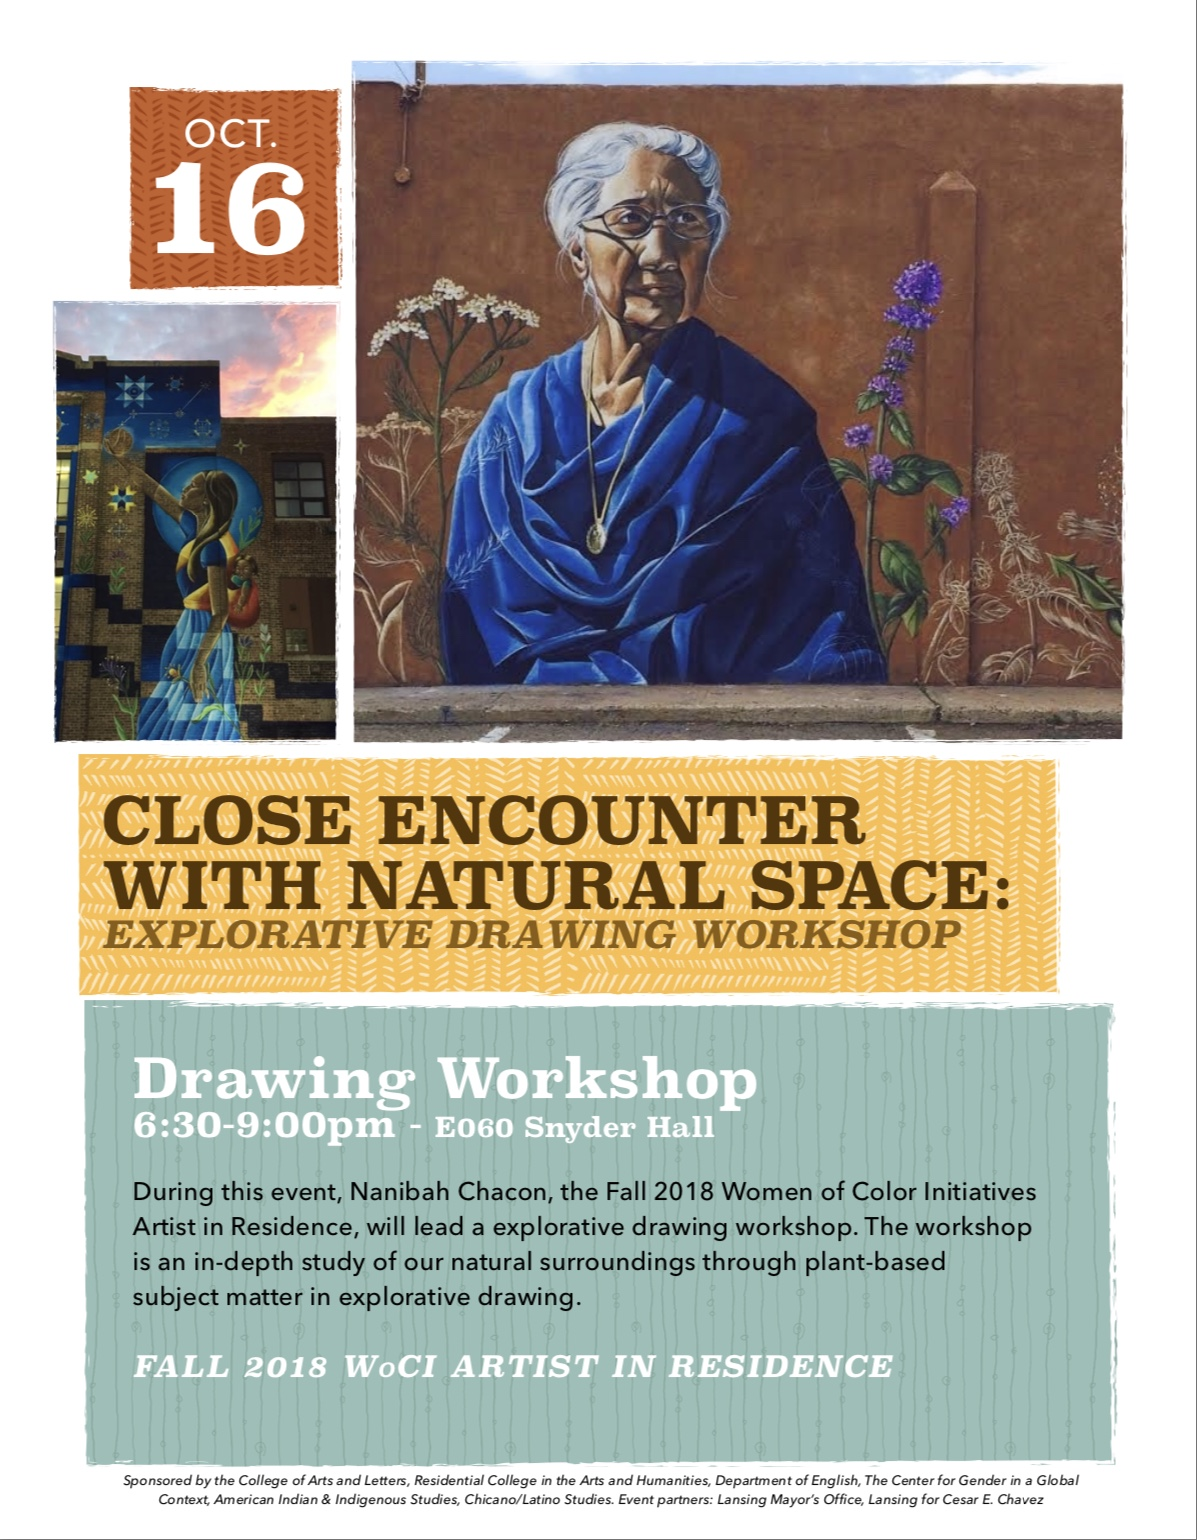 Close Encounter With Natural Space: Explorative Drawing Workshop with Nanibah Chacon @ Snyder Hall, Room E060 | East Lansing | Michigan | United States